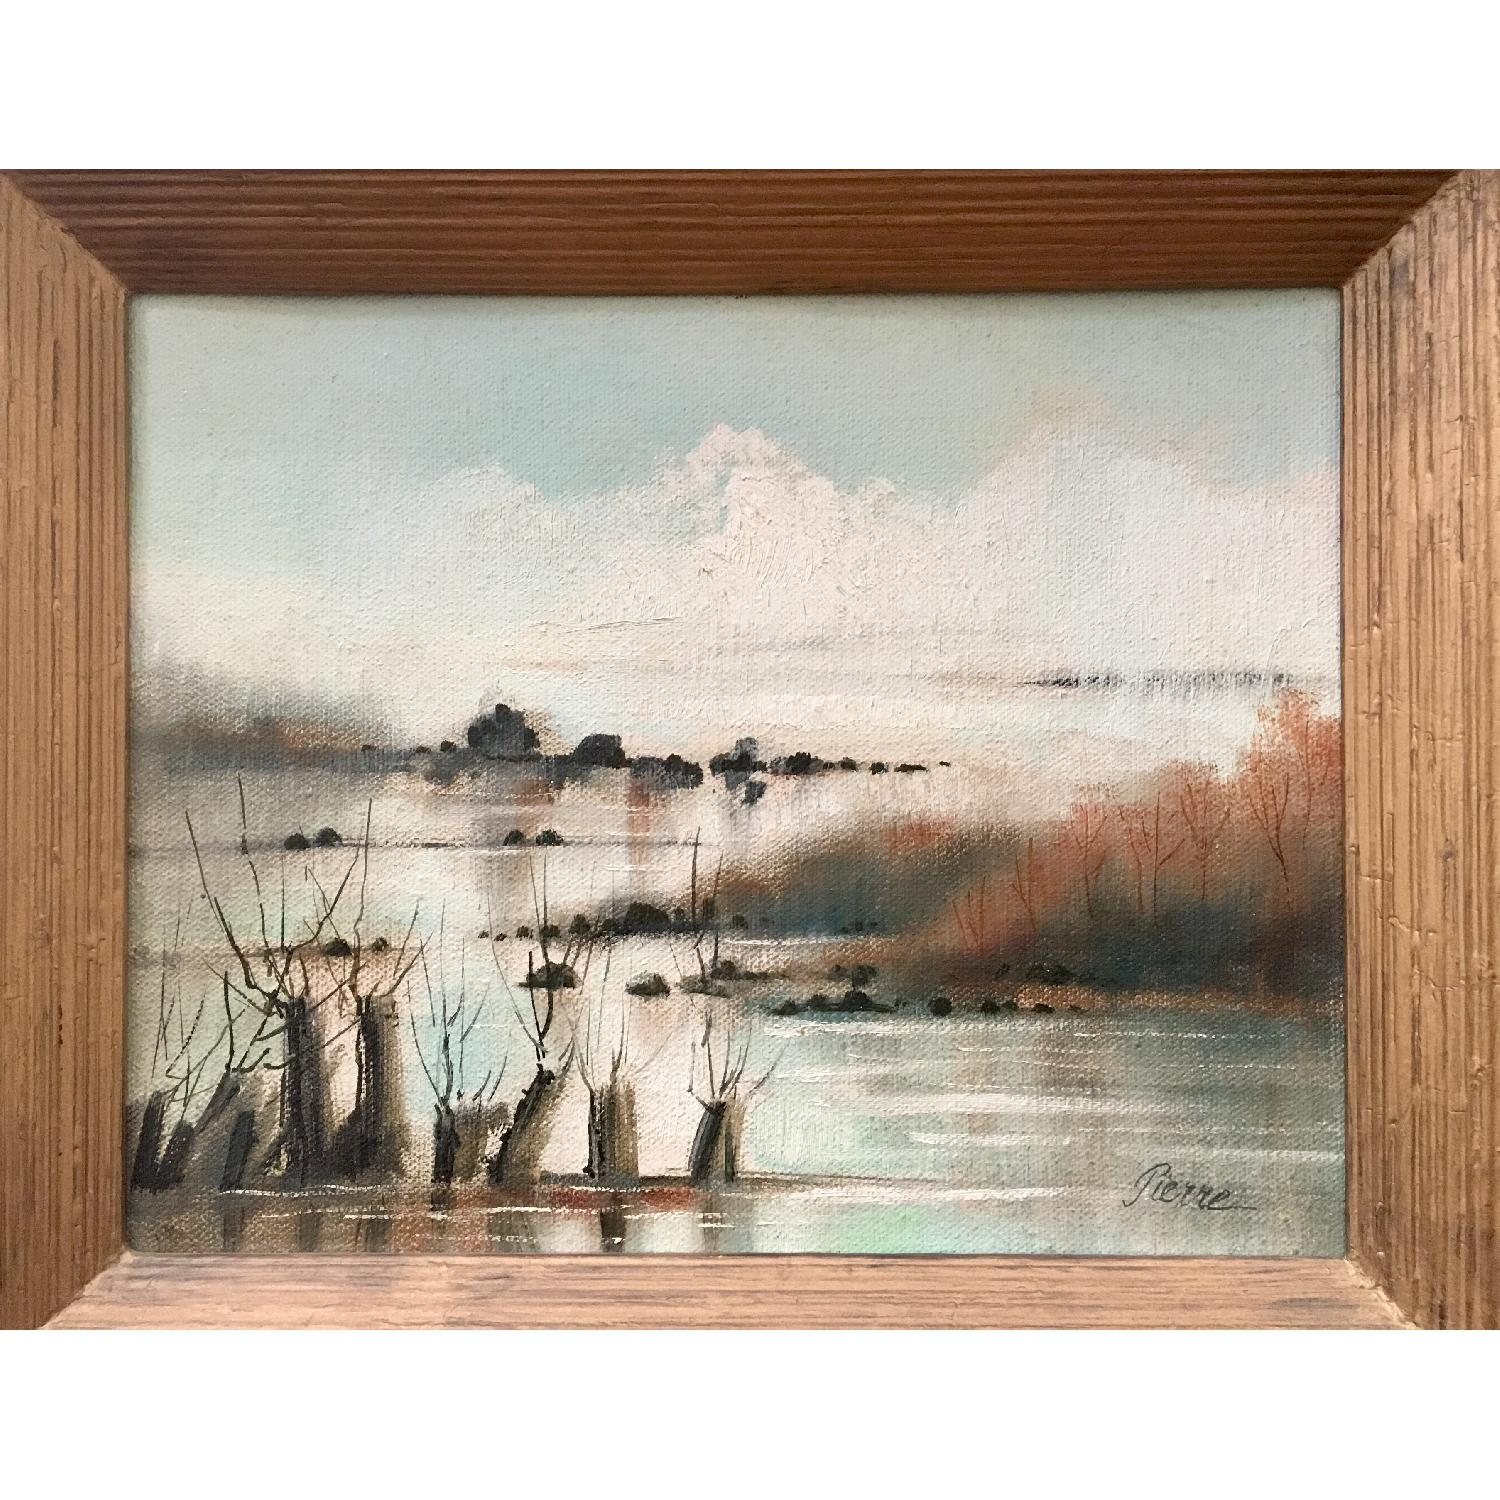 Vintage Dreamy Beach Waterscape Painting - image-3